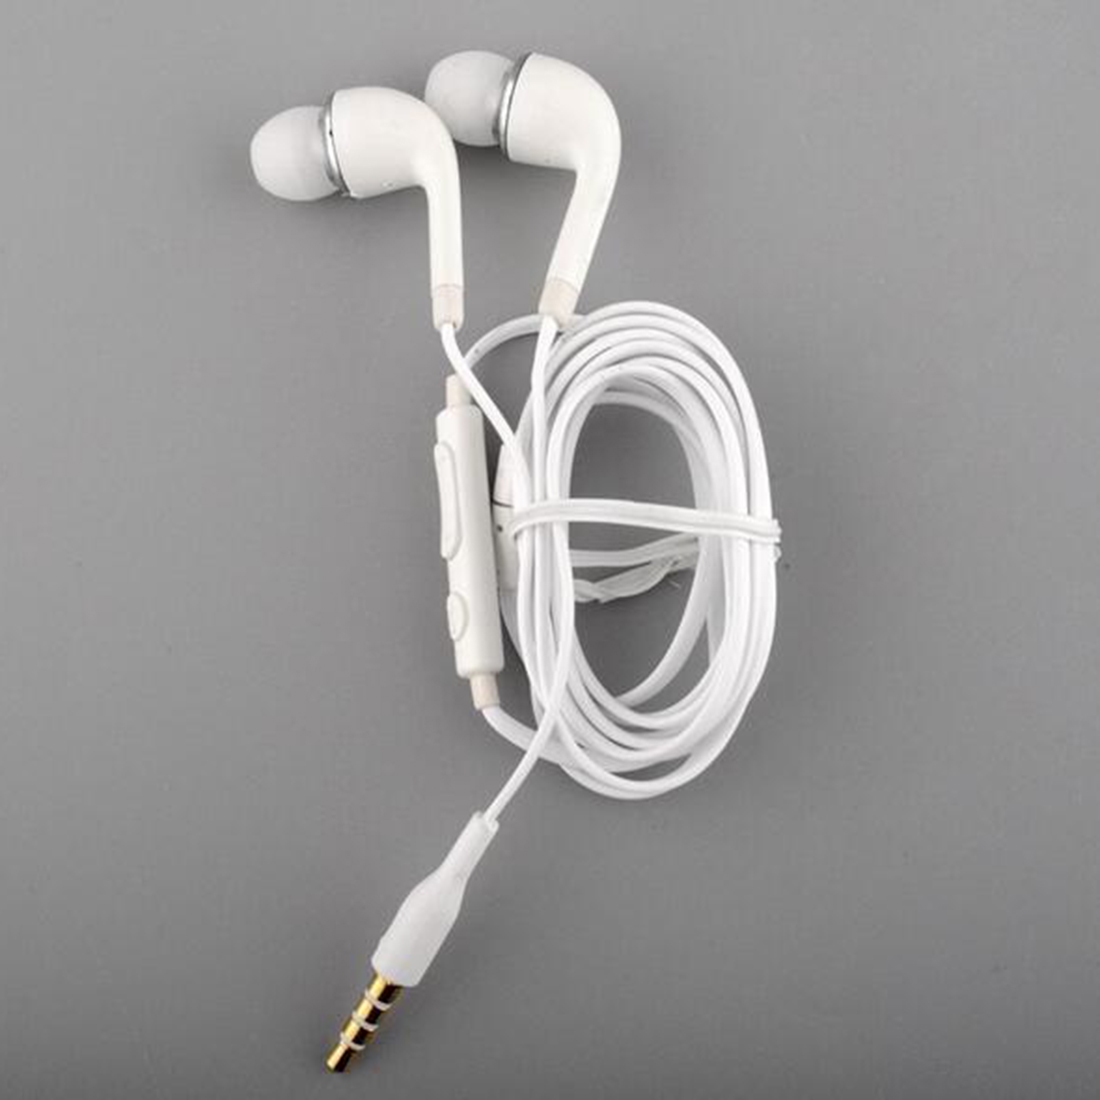 In-Ear Earphone For Samsung With Mic Wired Control In Ear Earphone Phone Earphones For Samsung Galaxy S4 S3 S2 S5 s6 s7 Note 2 new 3 5mm in ear wired earphone